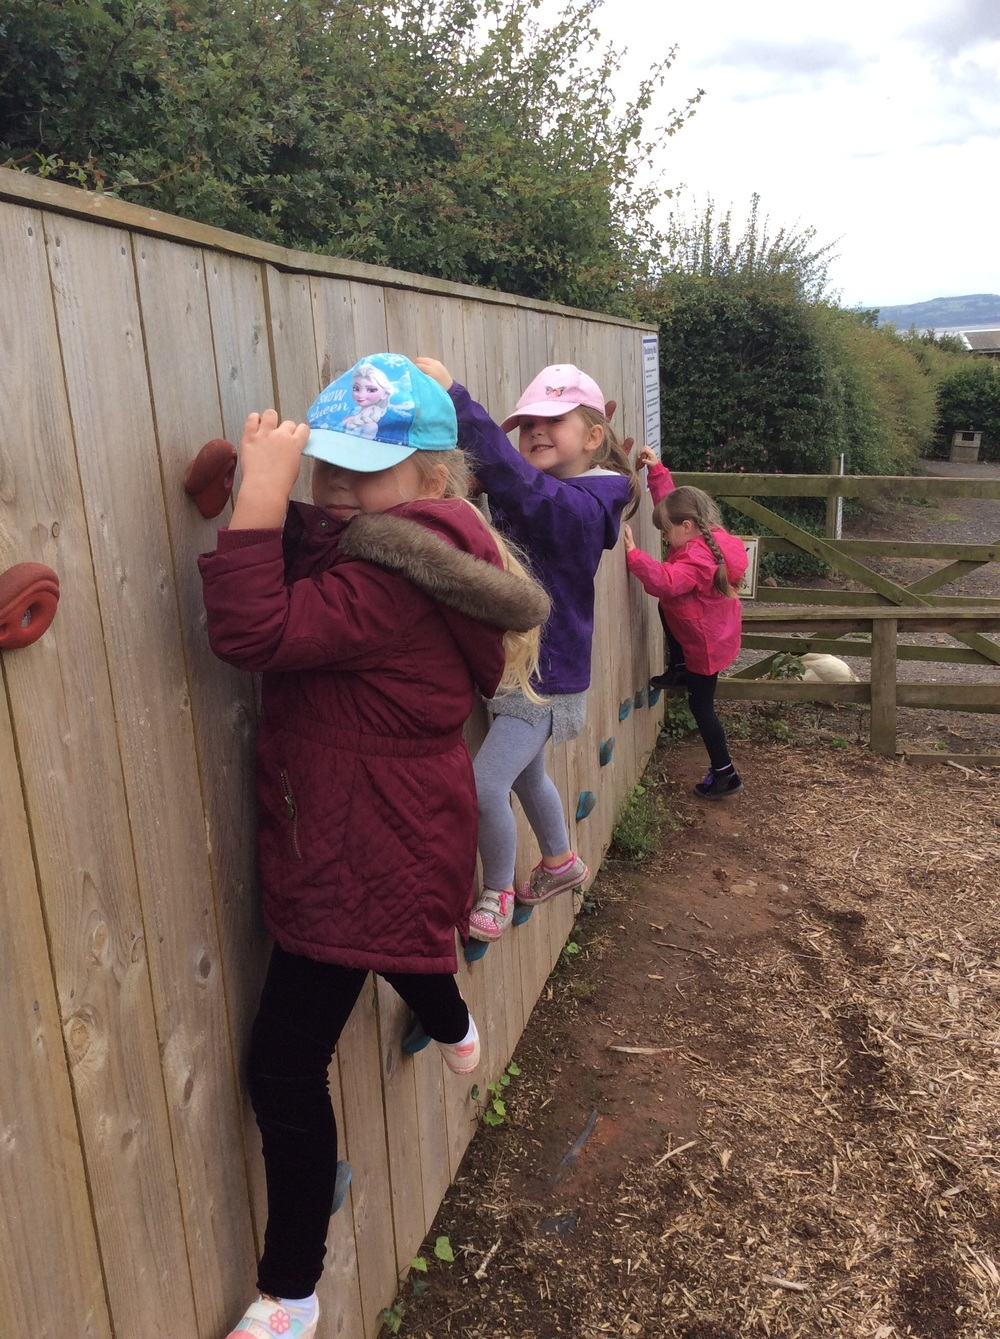 Time for fun on the adventure playground